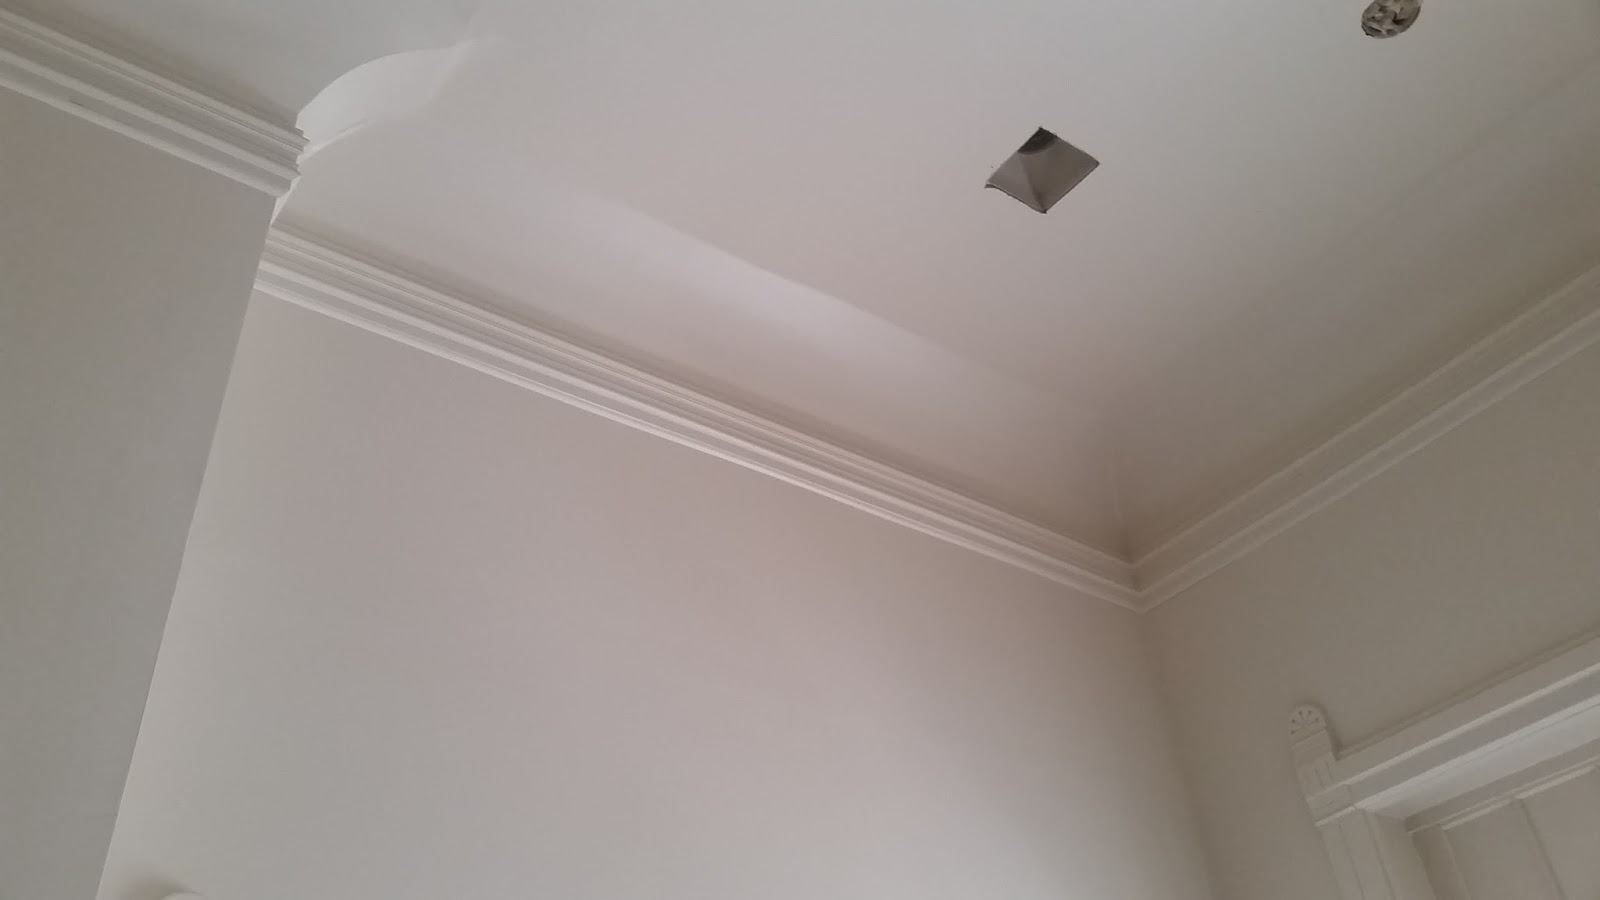 We picked divine white paint from sherwin williams it does a great job showing off the details in our historic trim